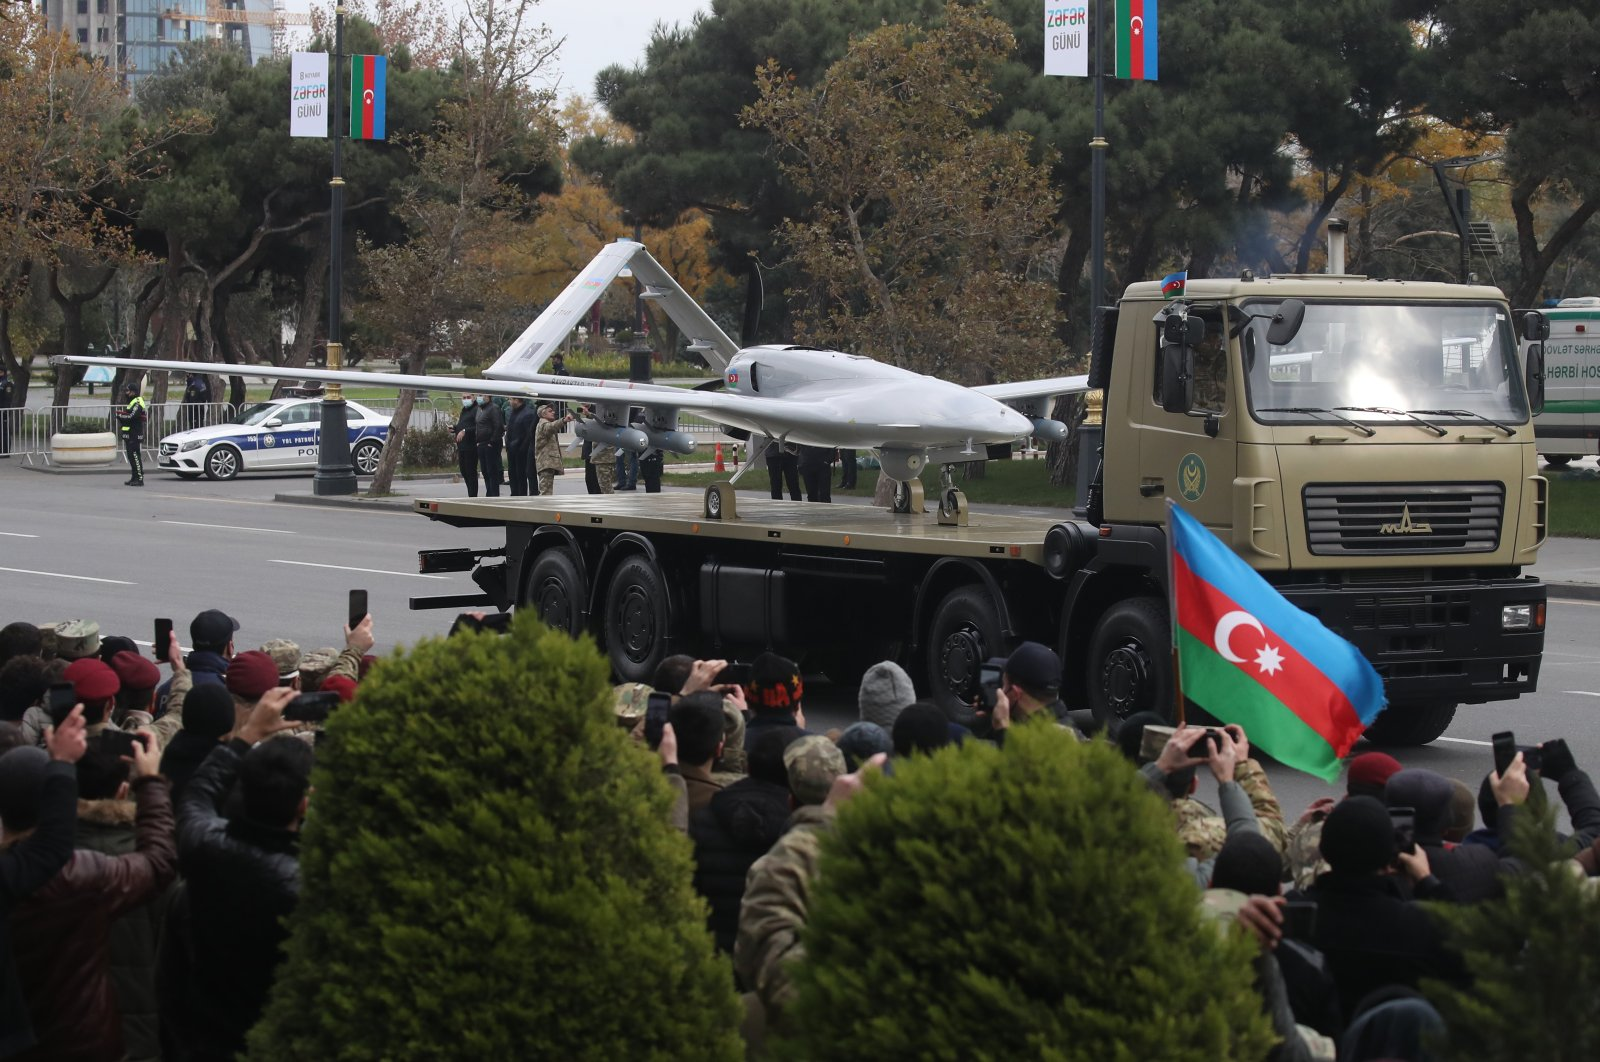 A Bayraktar TB2 unmanned combat reconnaissance aerial vehicle manufactured by Turkey's Baykar Makina takes part in a military parade marking the end of the Nagorno Karabakh military conflict, Baku, Azerbaijan, Dec. 10, 2020. (GettyImages)